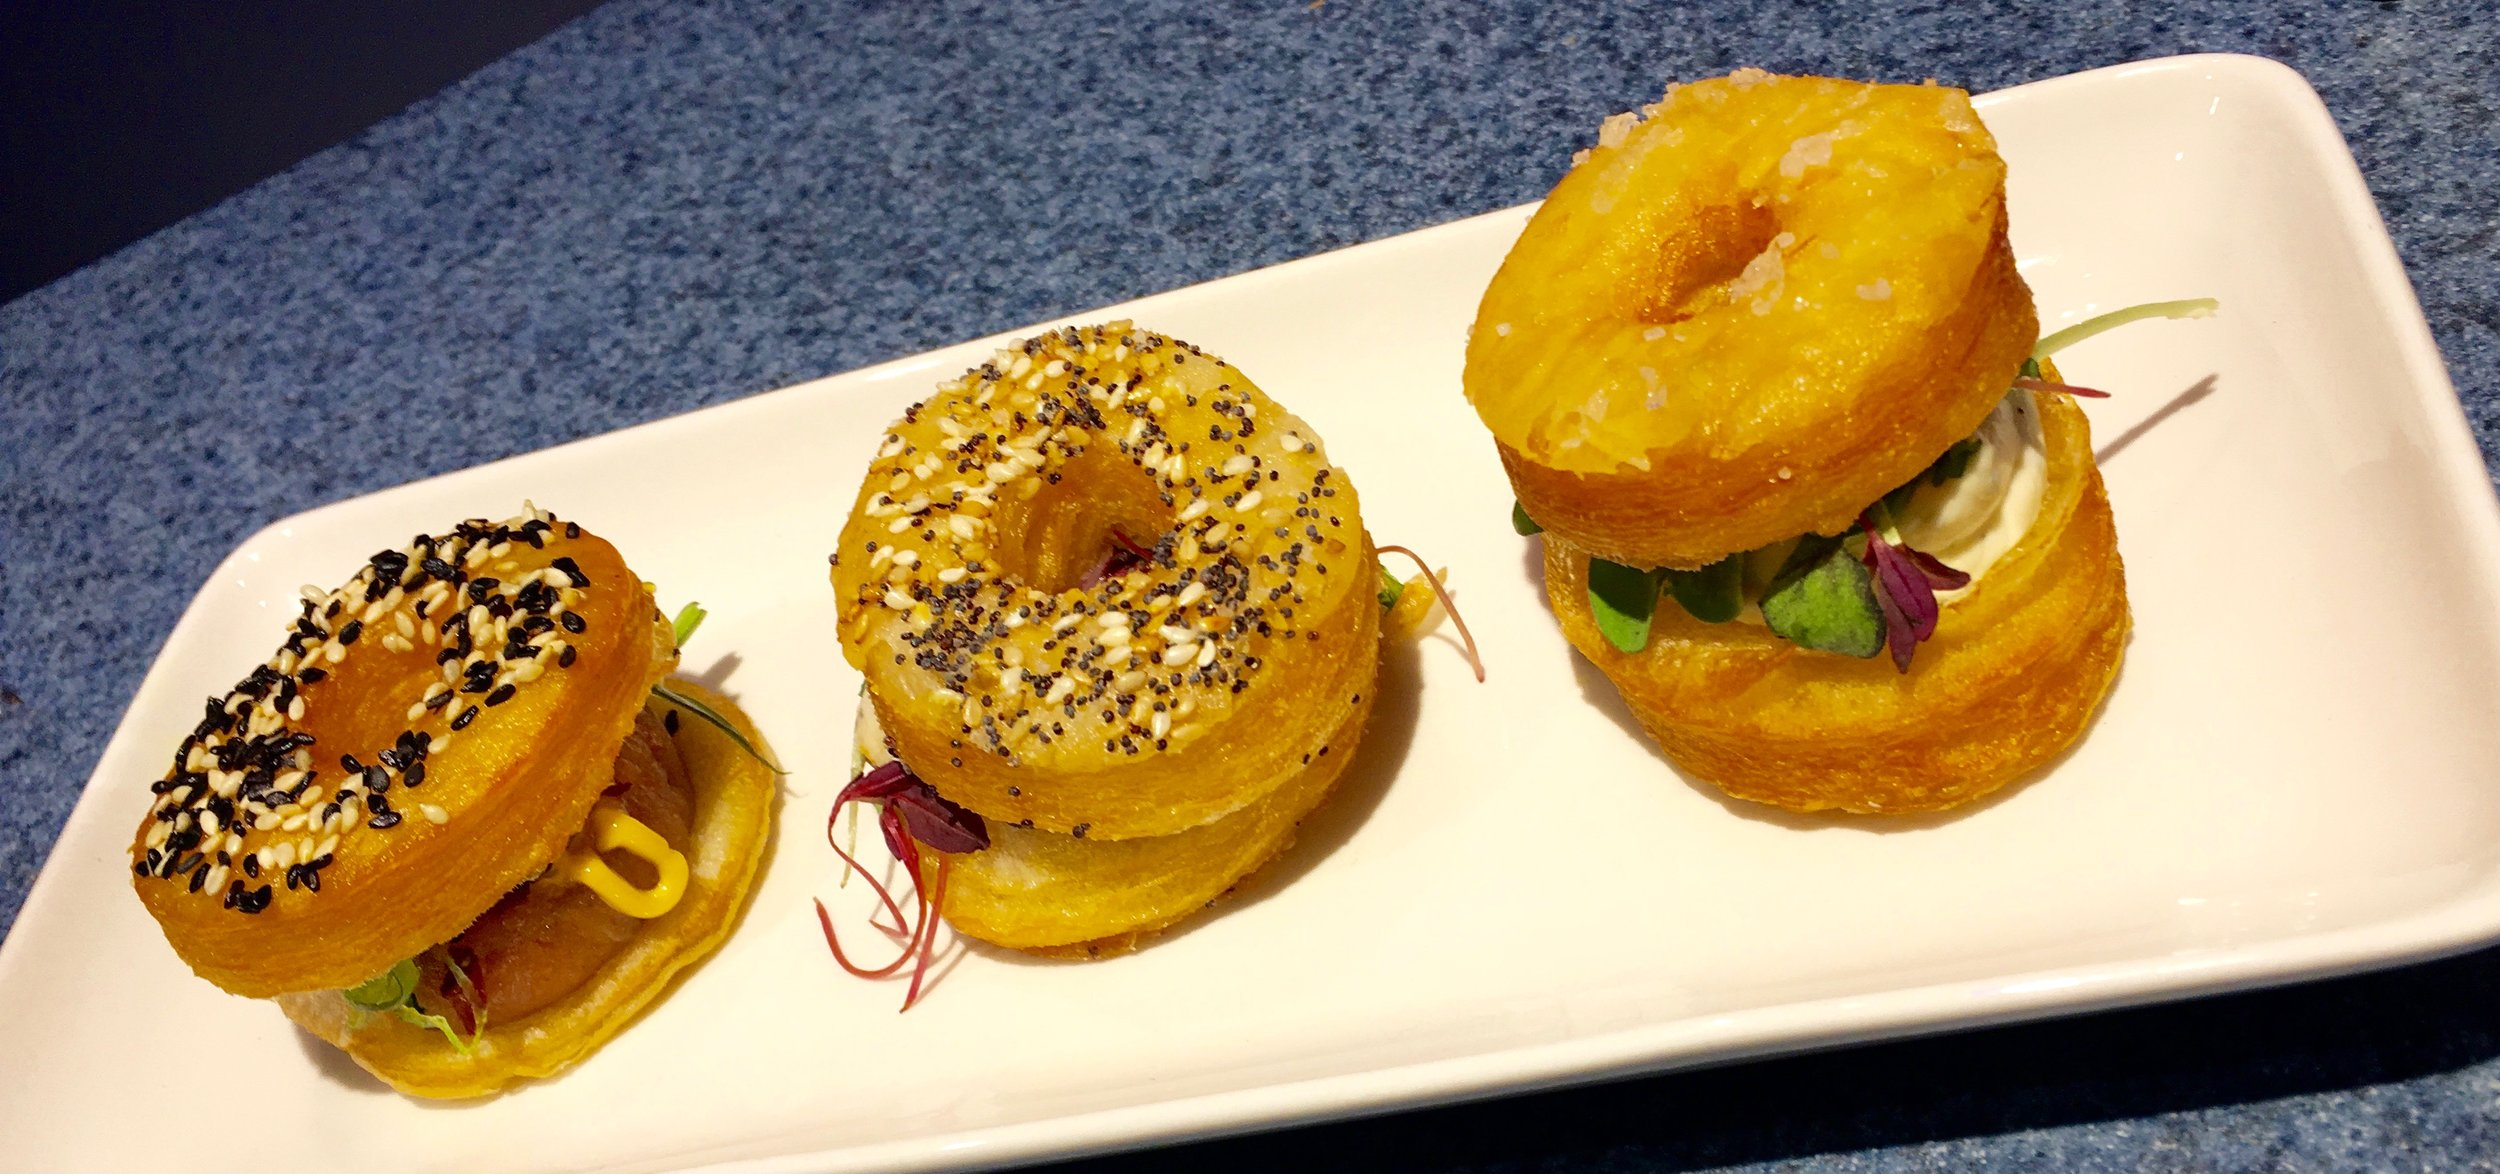 I absolutely loved these savory sandwiches. They're called Croissant Doughnuts and they're filled with herbed whipped cream, chicken mousse, or spicy tuna with Sriracha mayonnaise. They're sold at The Painter's Palate.